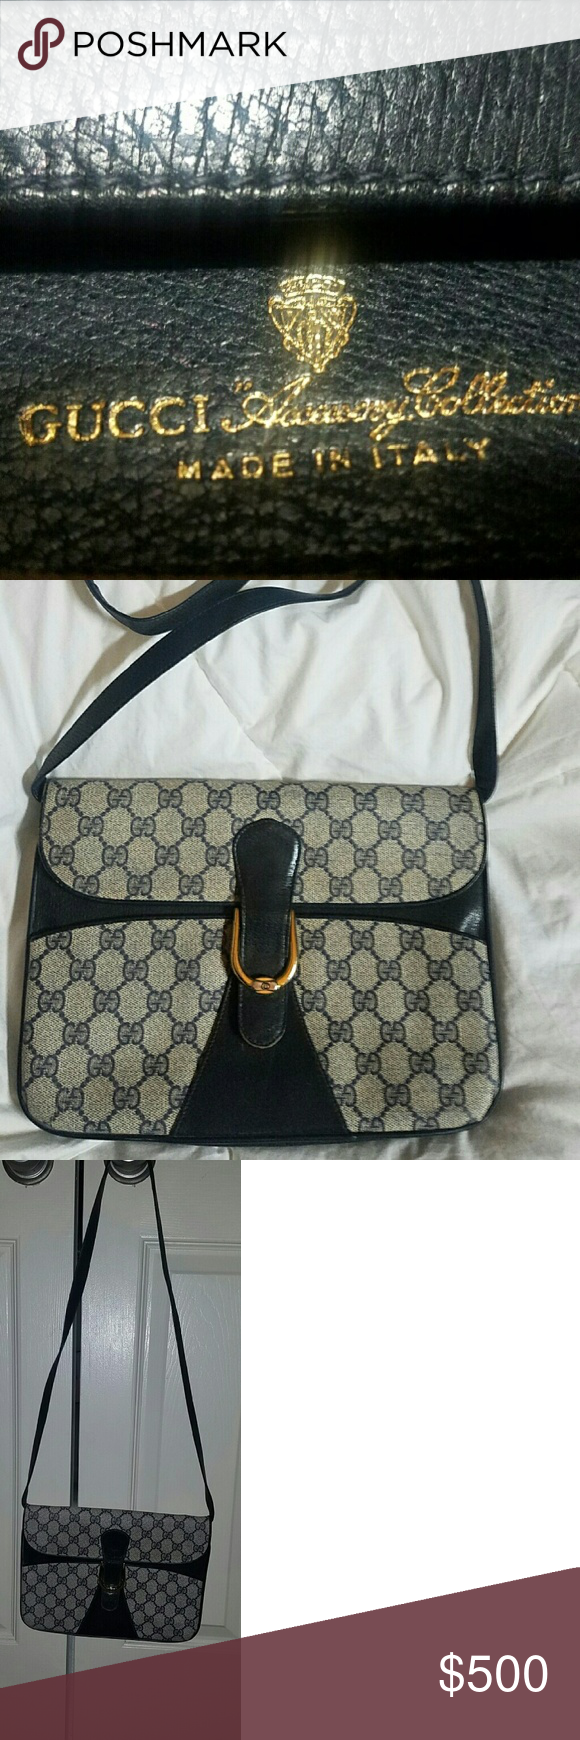 b51f9e366a5a5 Vintage 80s Gucci bag Authentic Gucci bag, purchased in Italy in ...